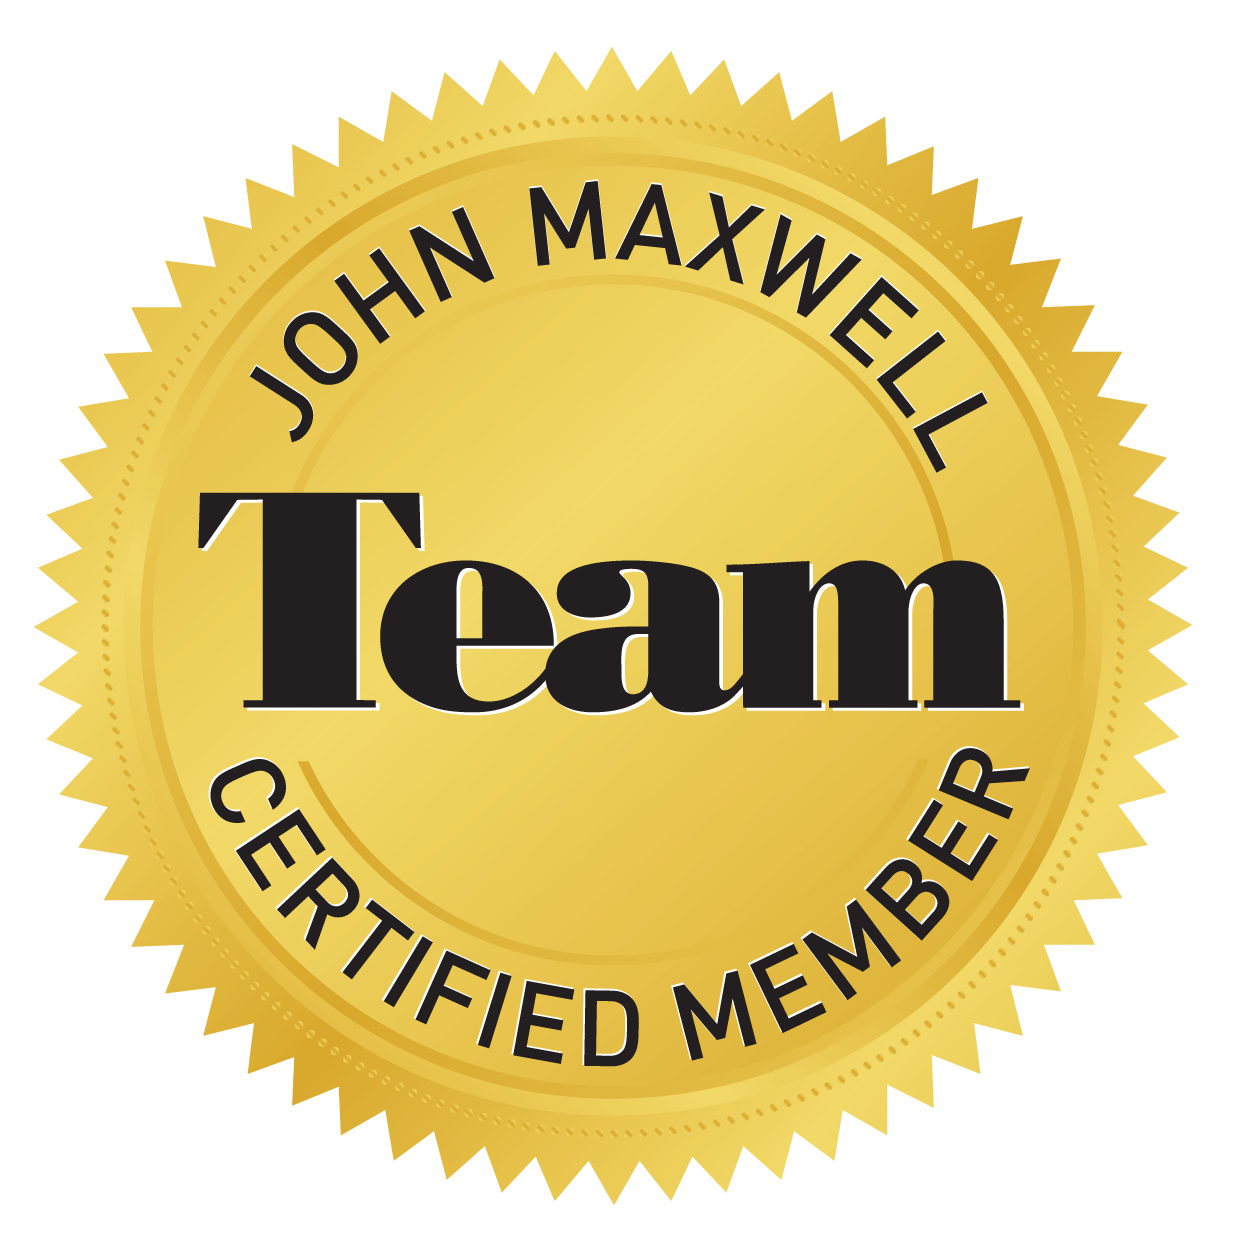 Rena Romano is a John Maxwell Team Certified Speaker